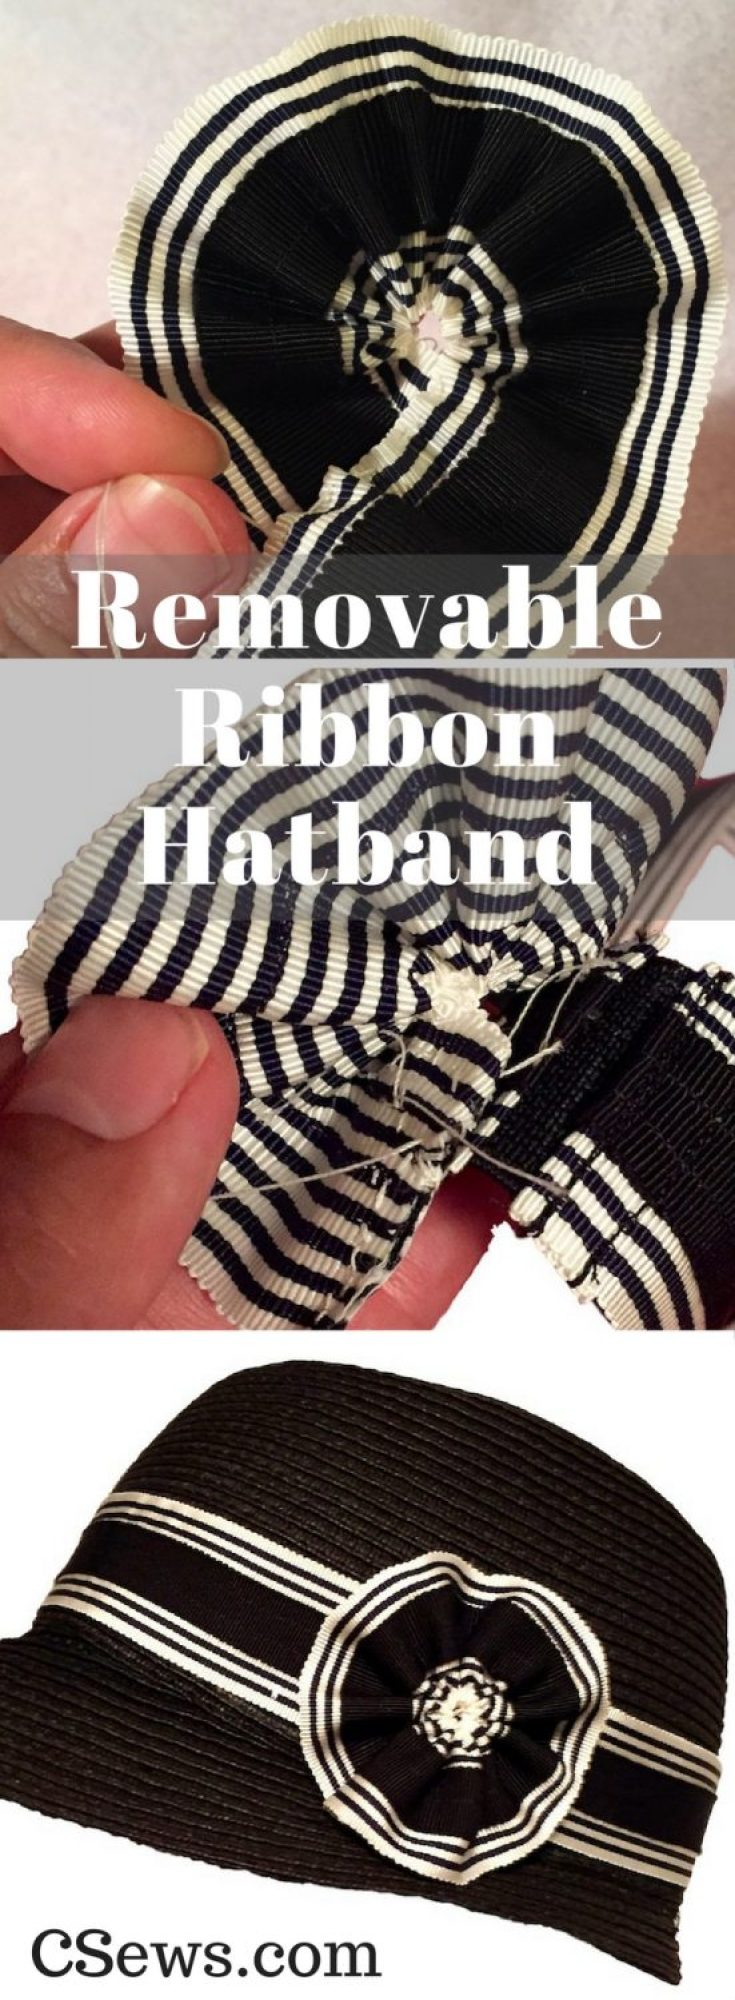 How to make a removeable ribbon hat band - Petersham ribbon, elastic